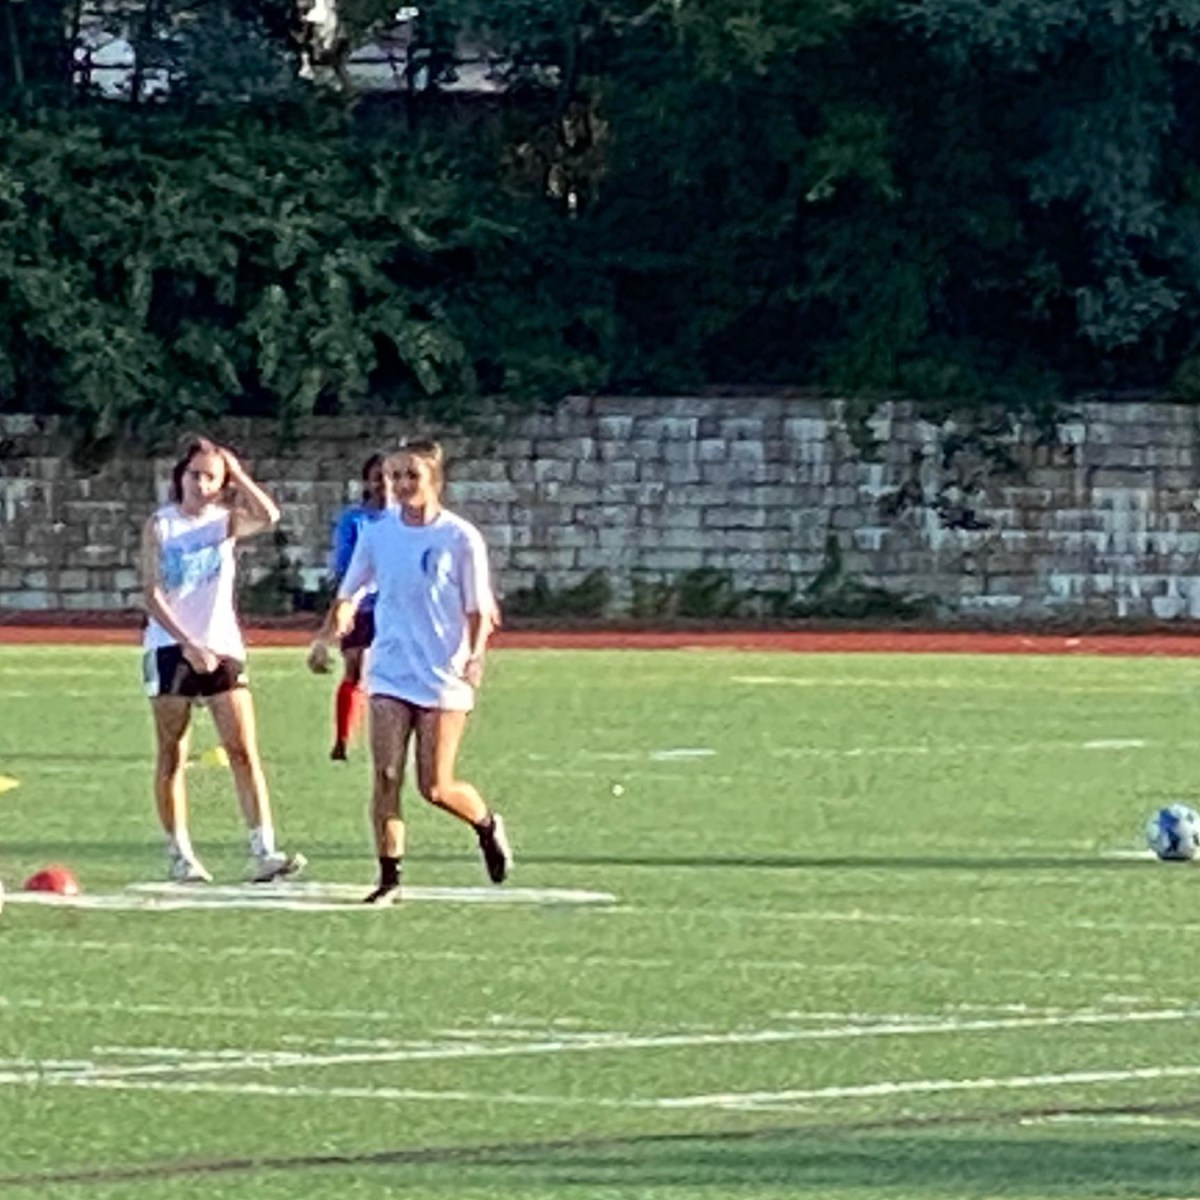 Soccer practice at Andrea McCoy Athletic Field.